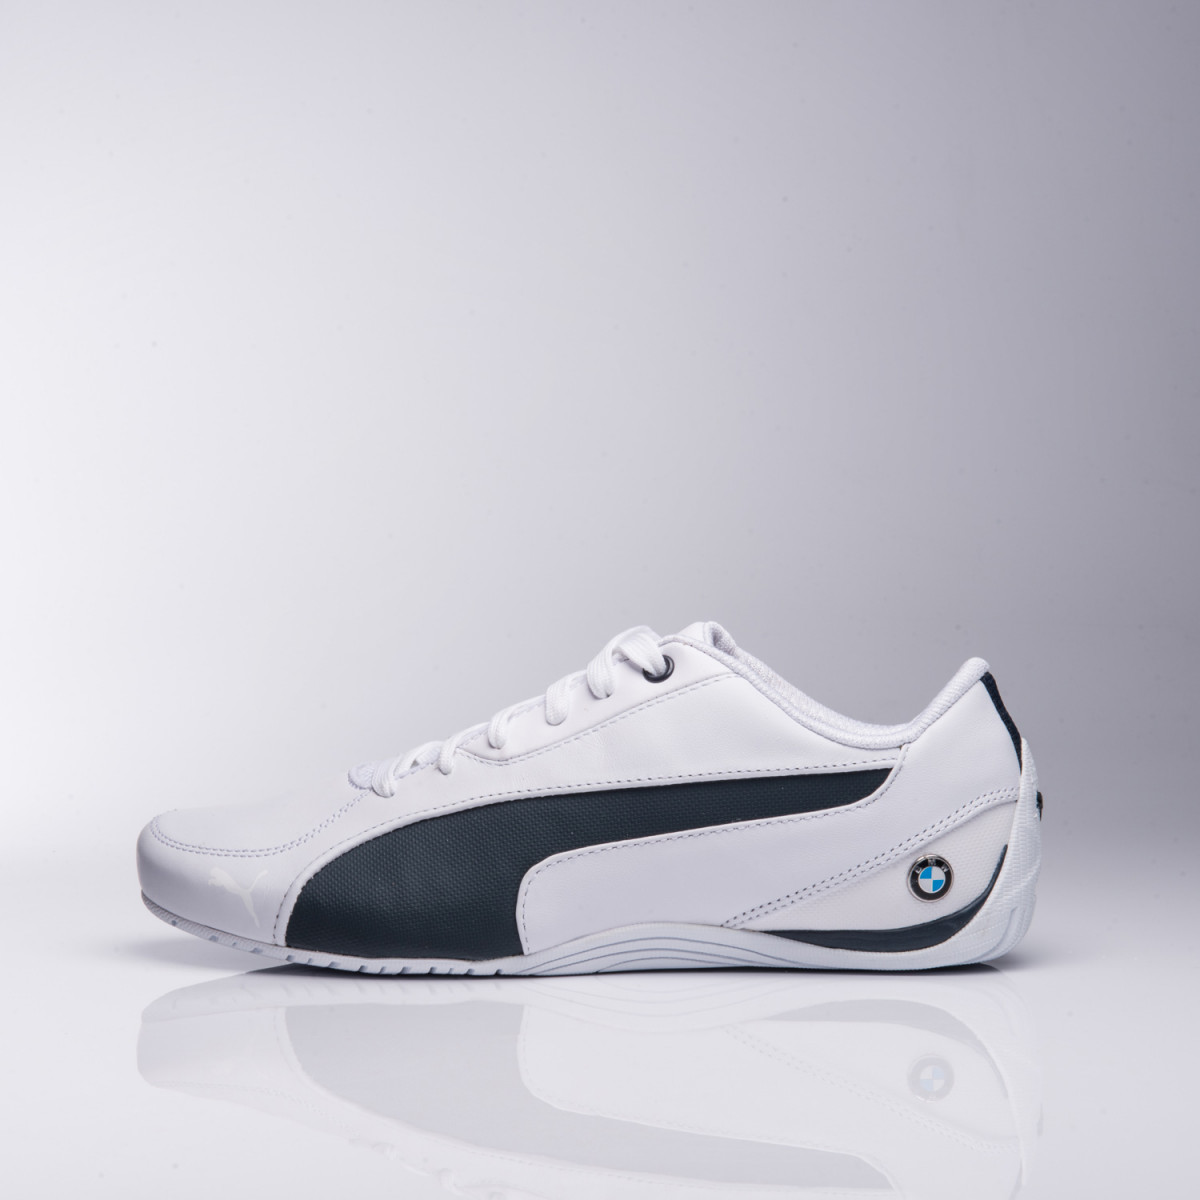 ZAPATILLAS PUMA BMW MS DRIFT CAT 5